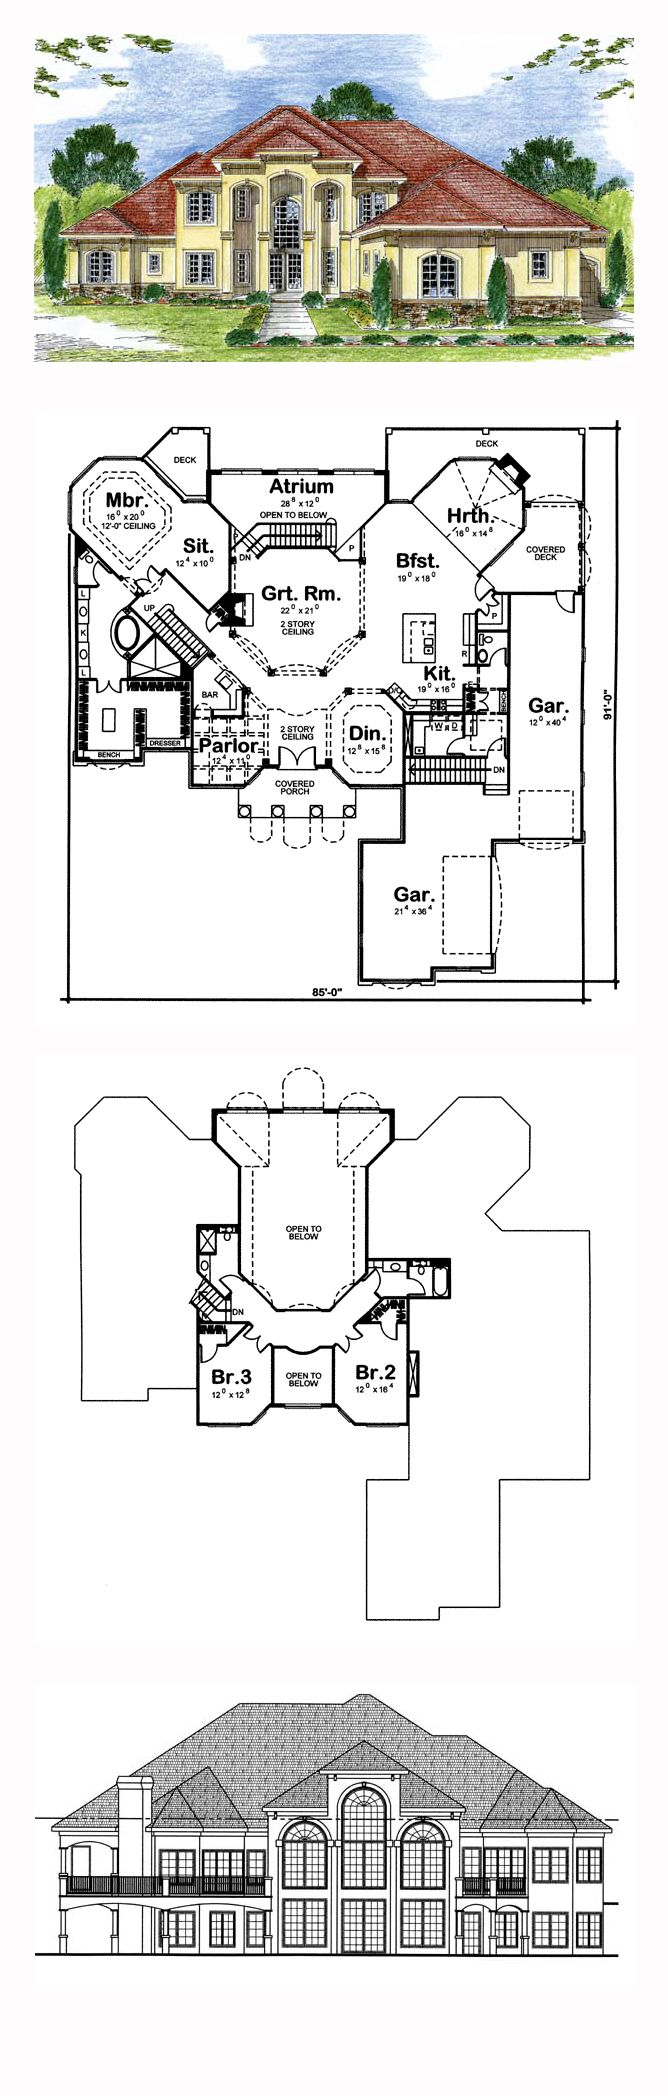 49 best images about southwest house plans on pinterest for Southwest house plans